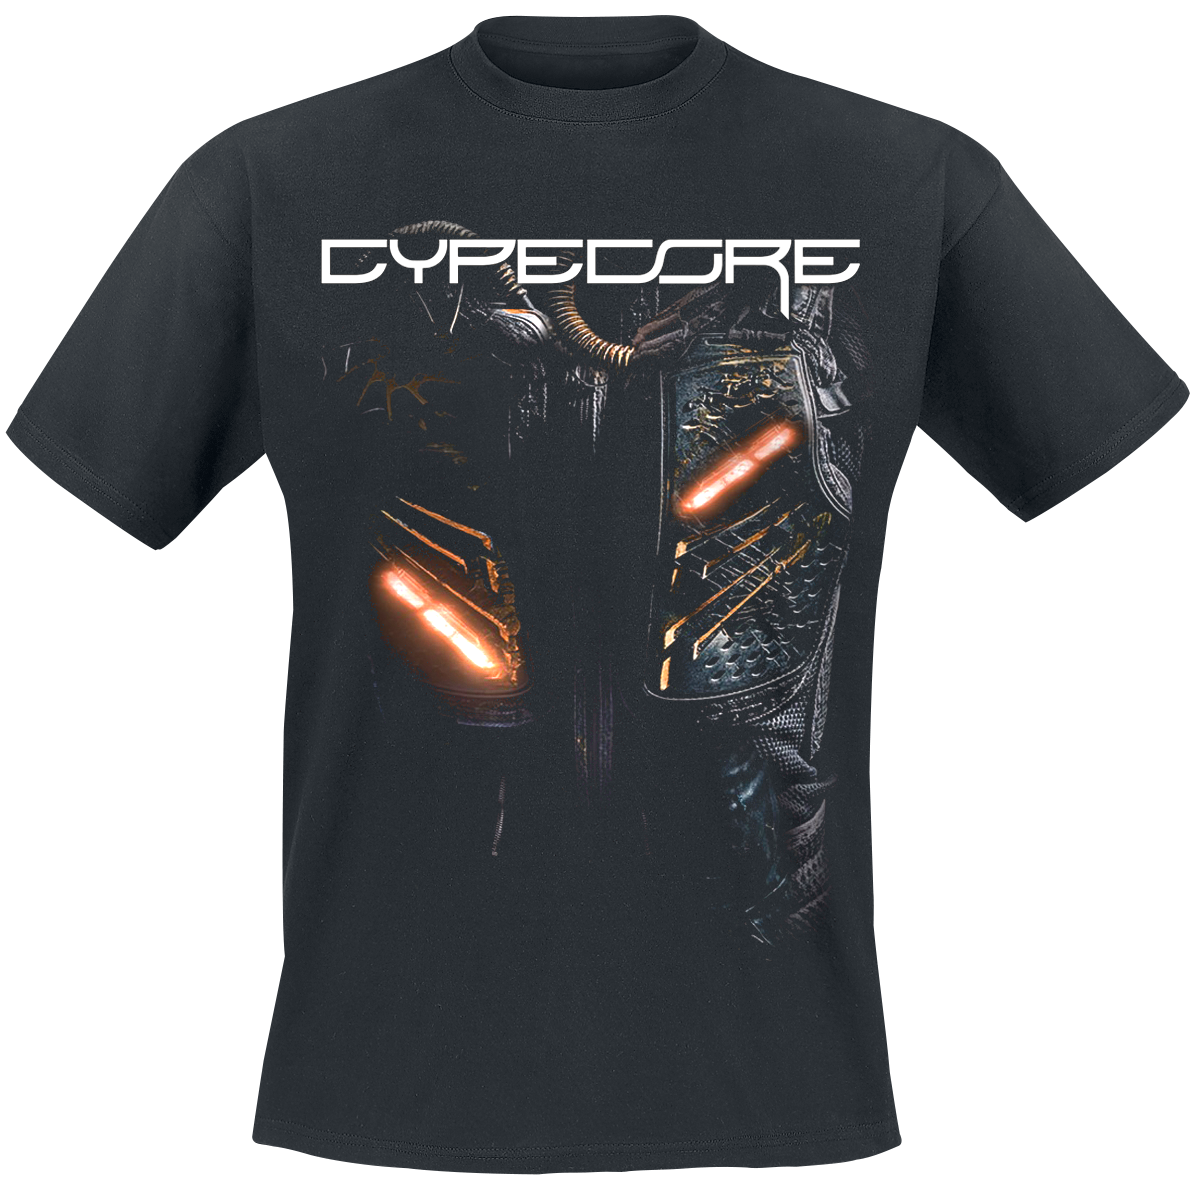 Image of Cypecore The alliance CD & T-Shirt Standard